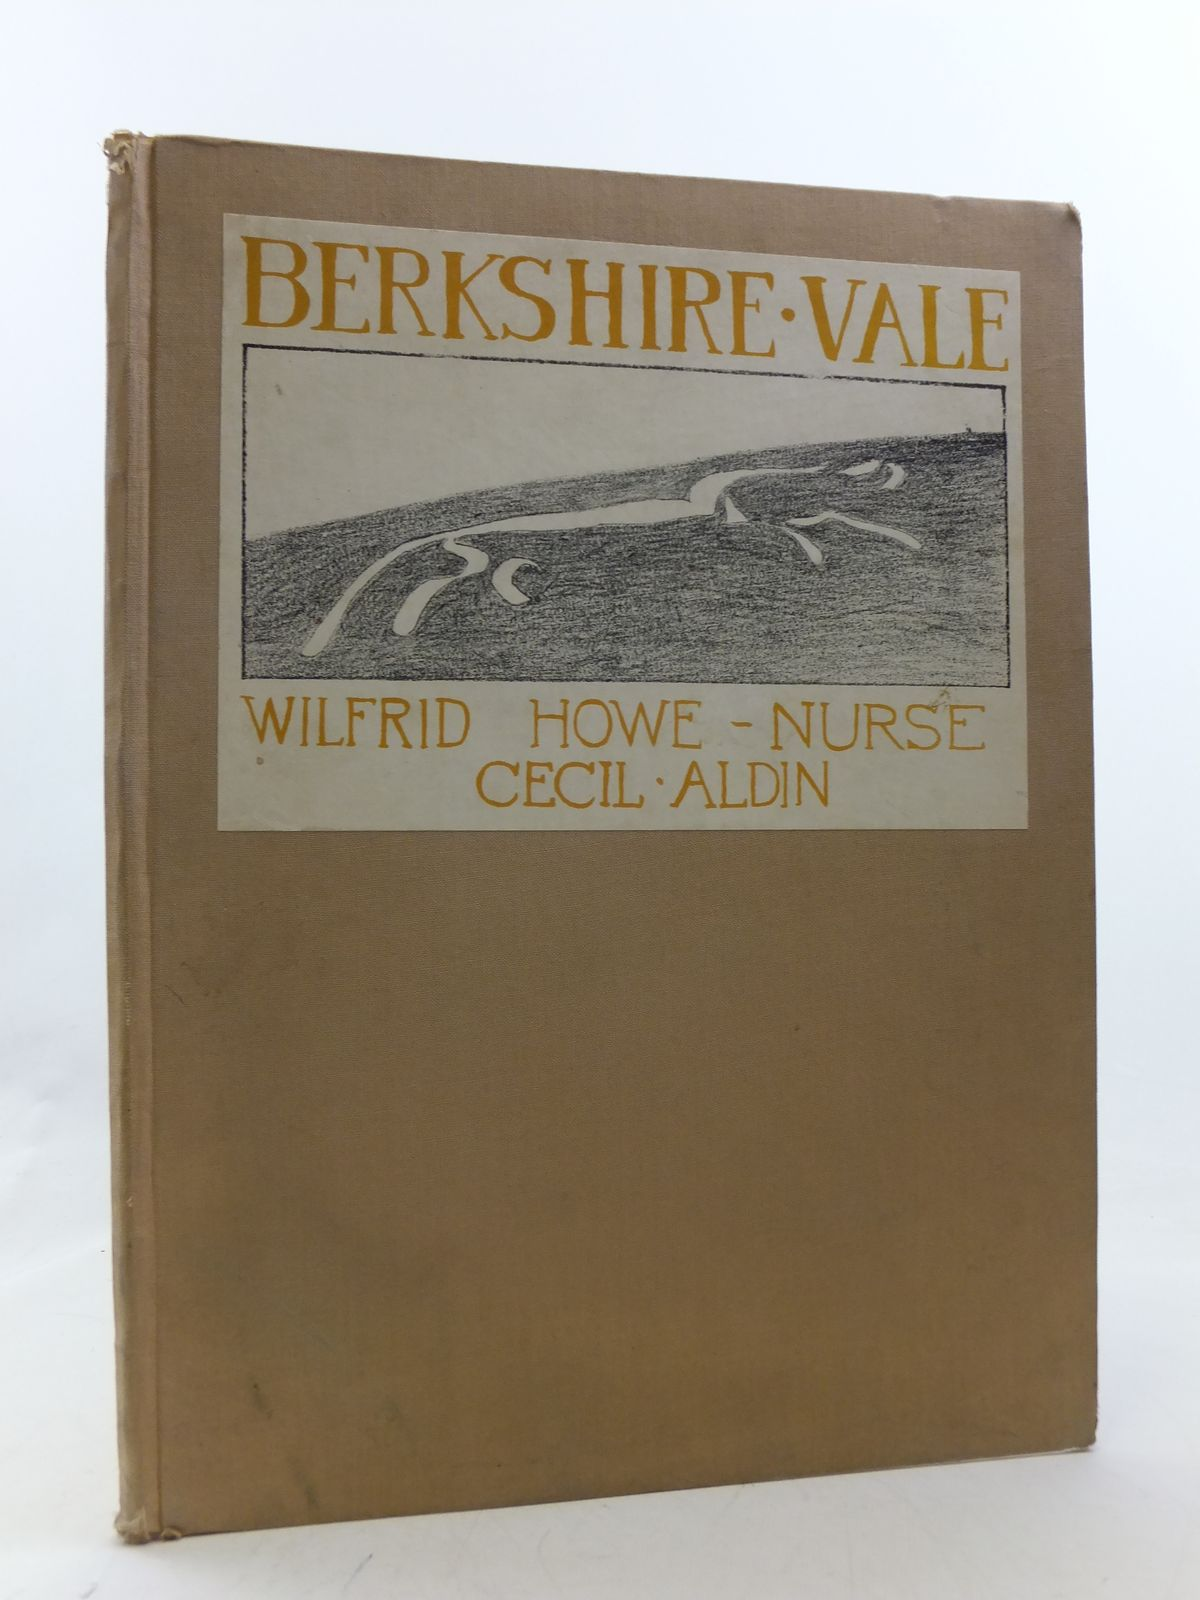 Photo of BERKSHIRE VALE written by Howe-Nurse, Wilfrid illustrated by Aldin, Cecil published by Basil Blackwell (STOCK CODE: 2113071)  for sale by Stella & Rose's Books